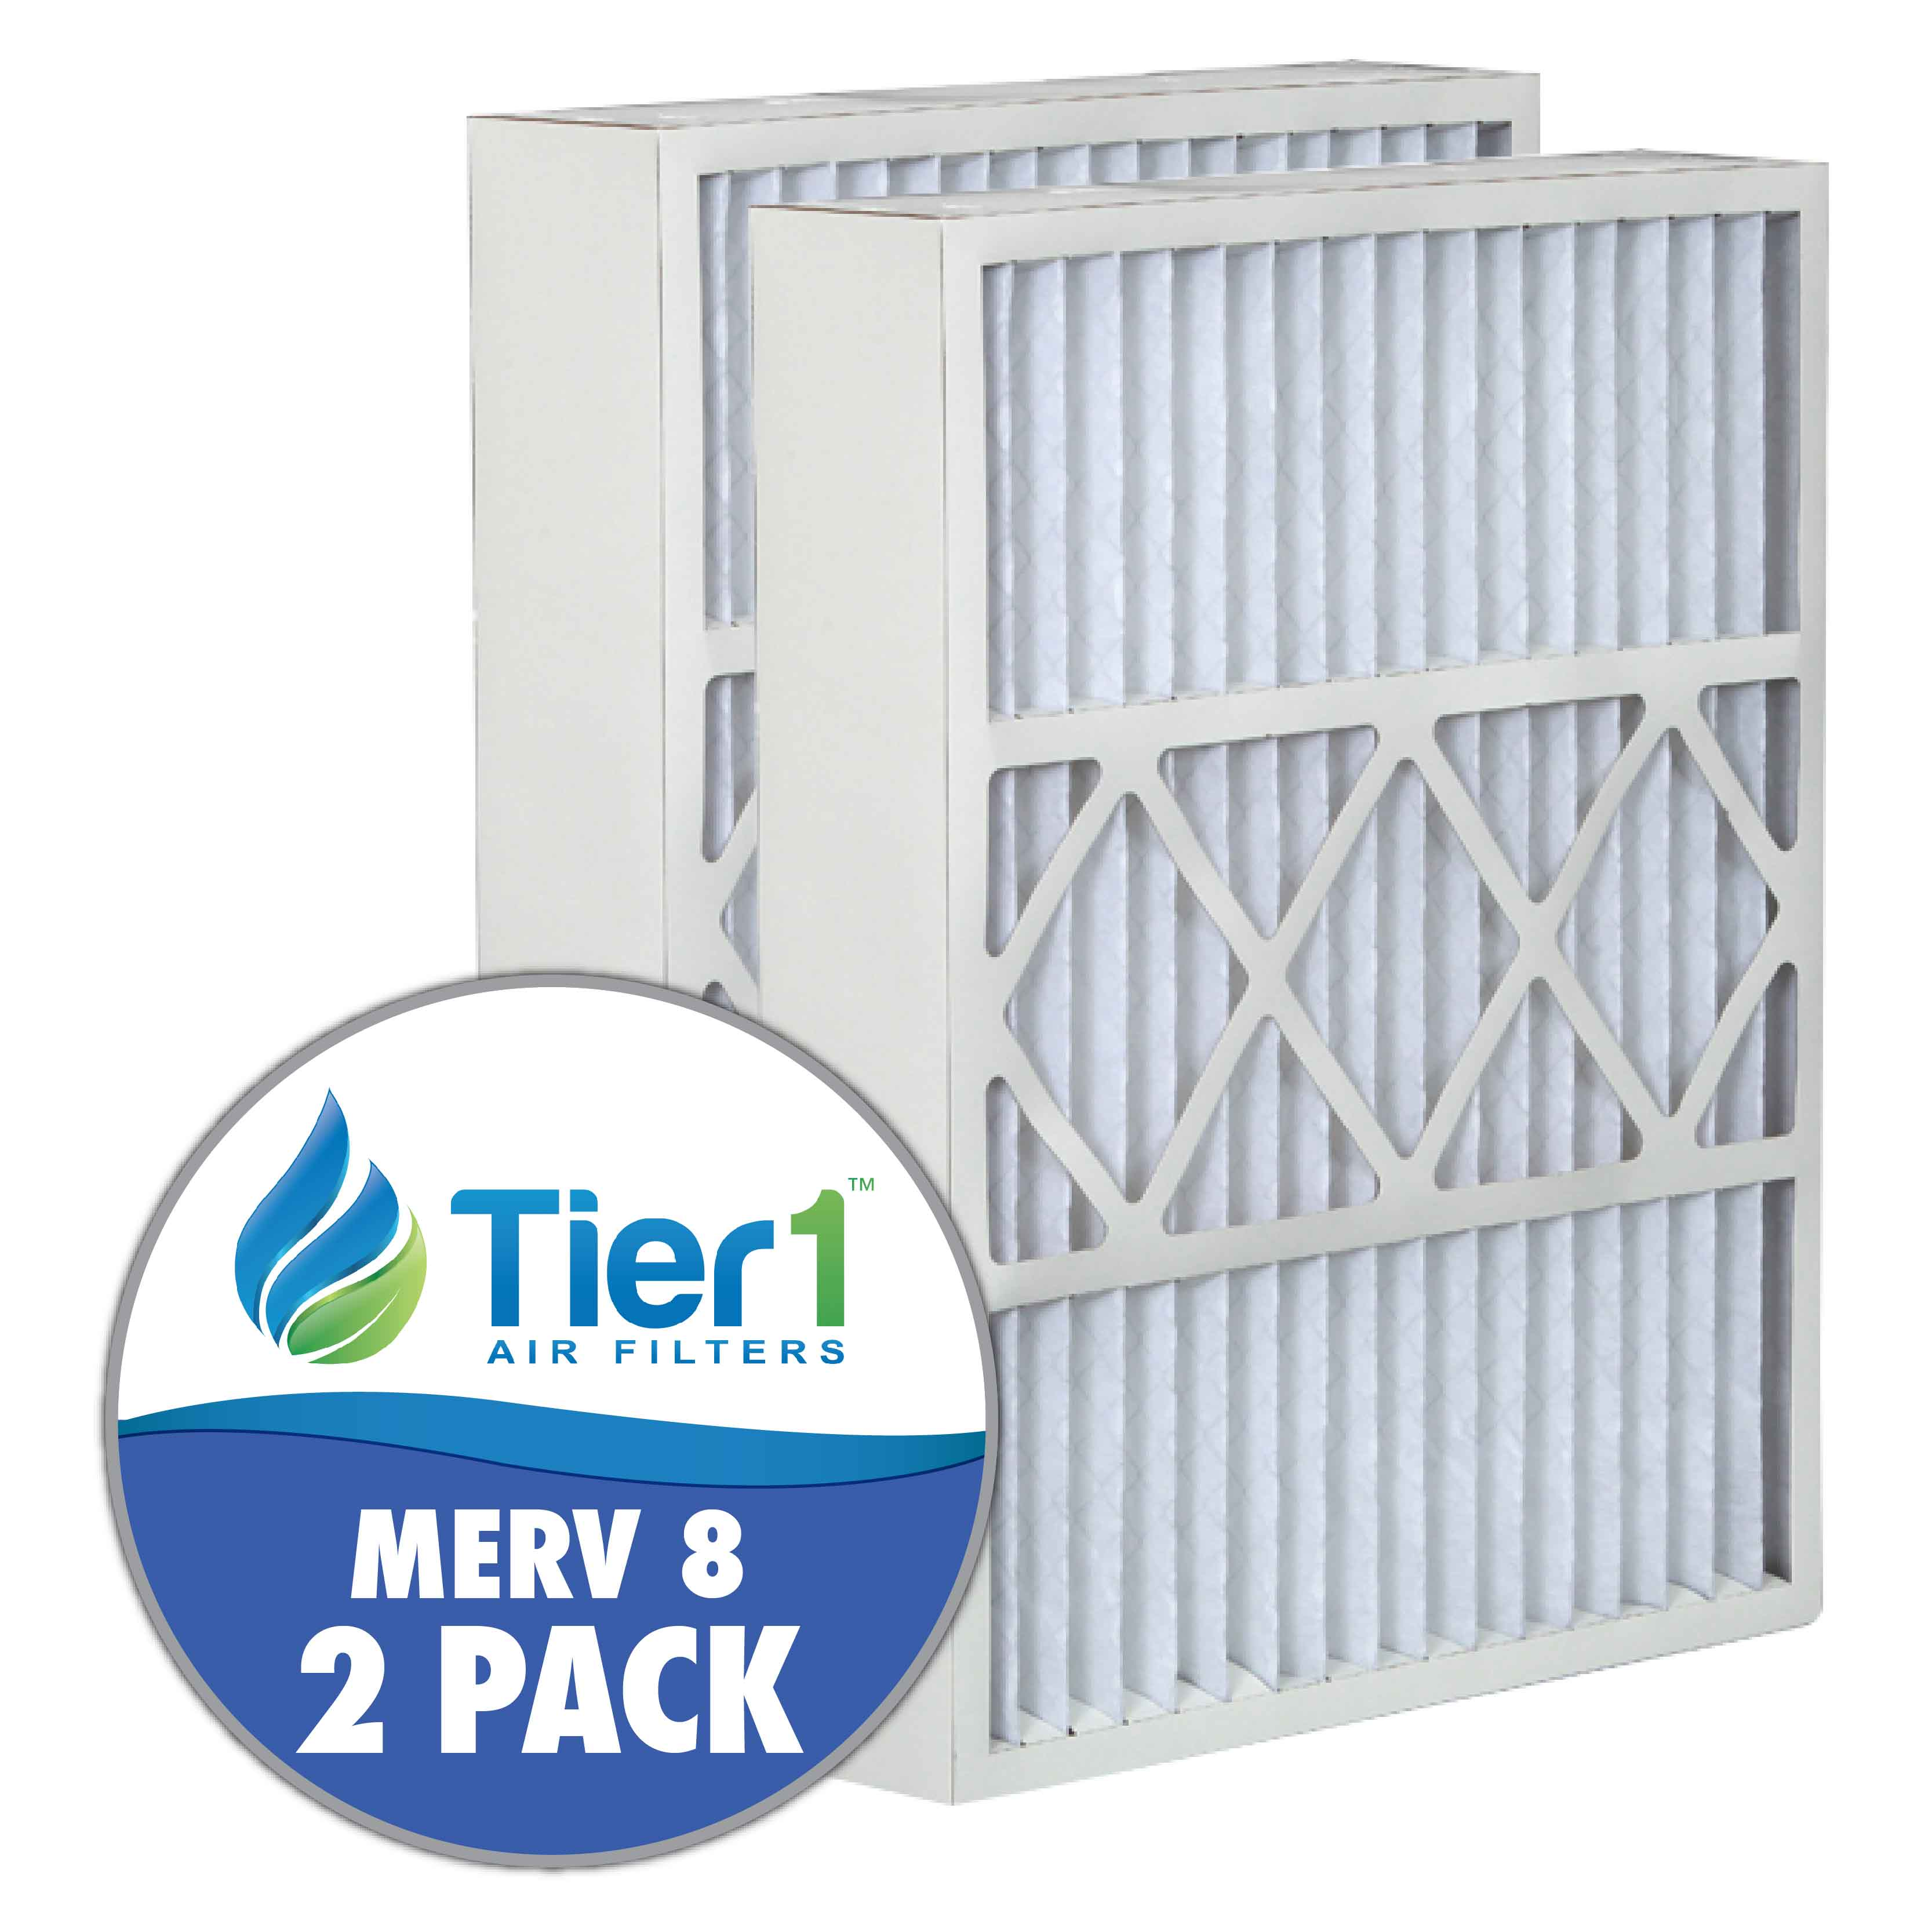 Tier1 brand replacement for Honeywell FC100A1029, FC100C1009 & FC200E1029 - 16 x 25 x 5 - MERV 8 (2-Pack) TIER1-DPFW16X25X5